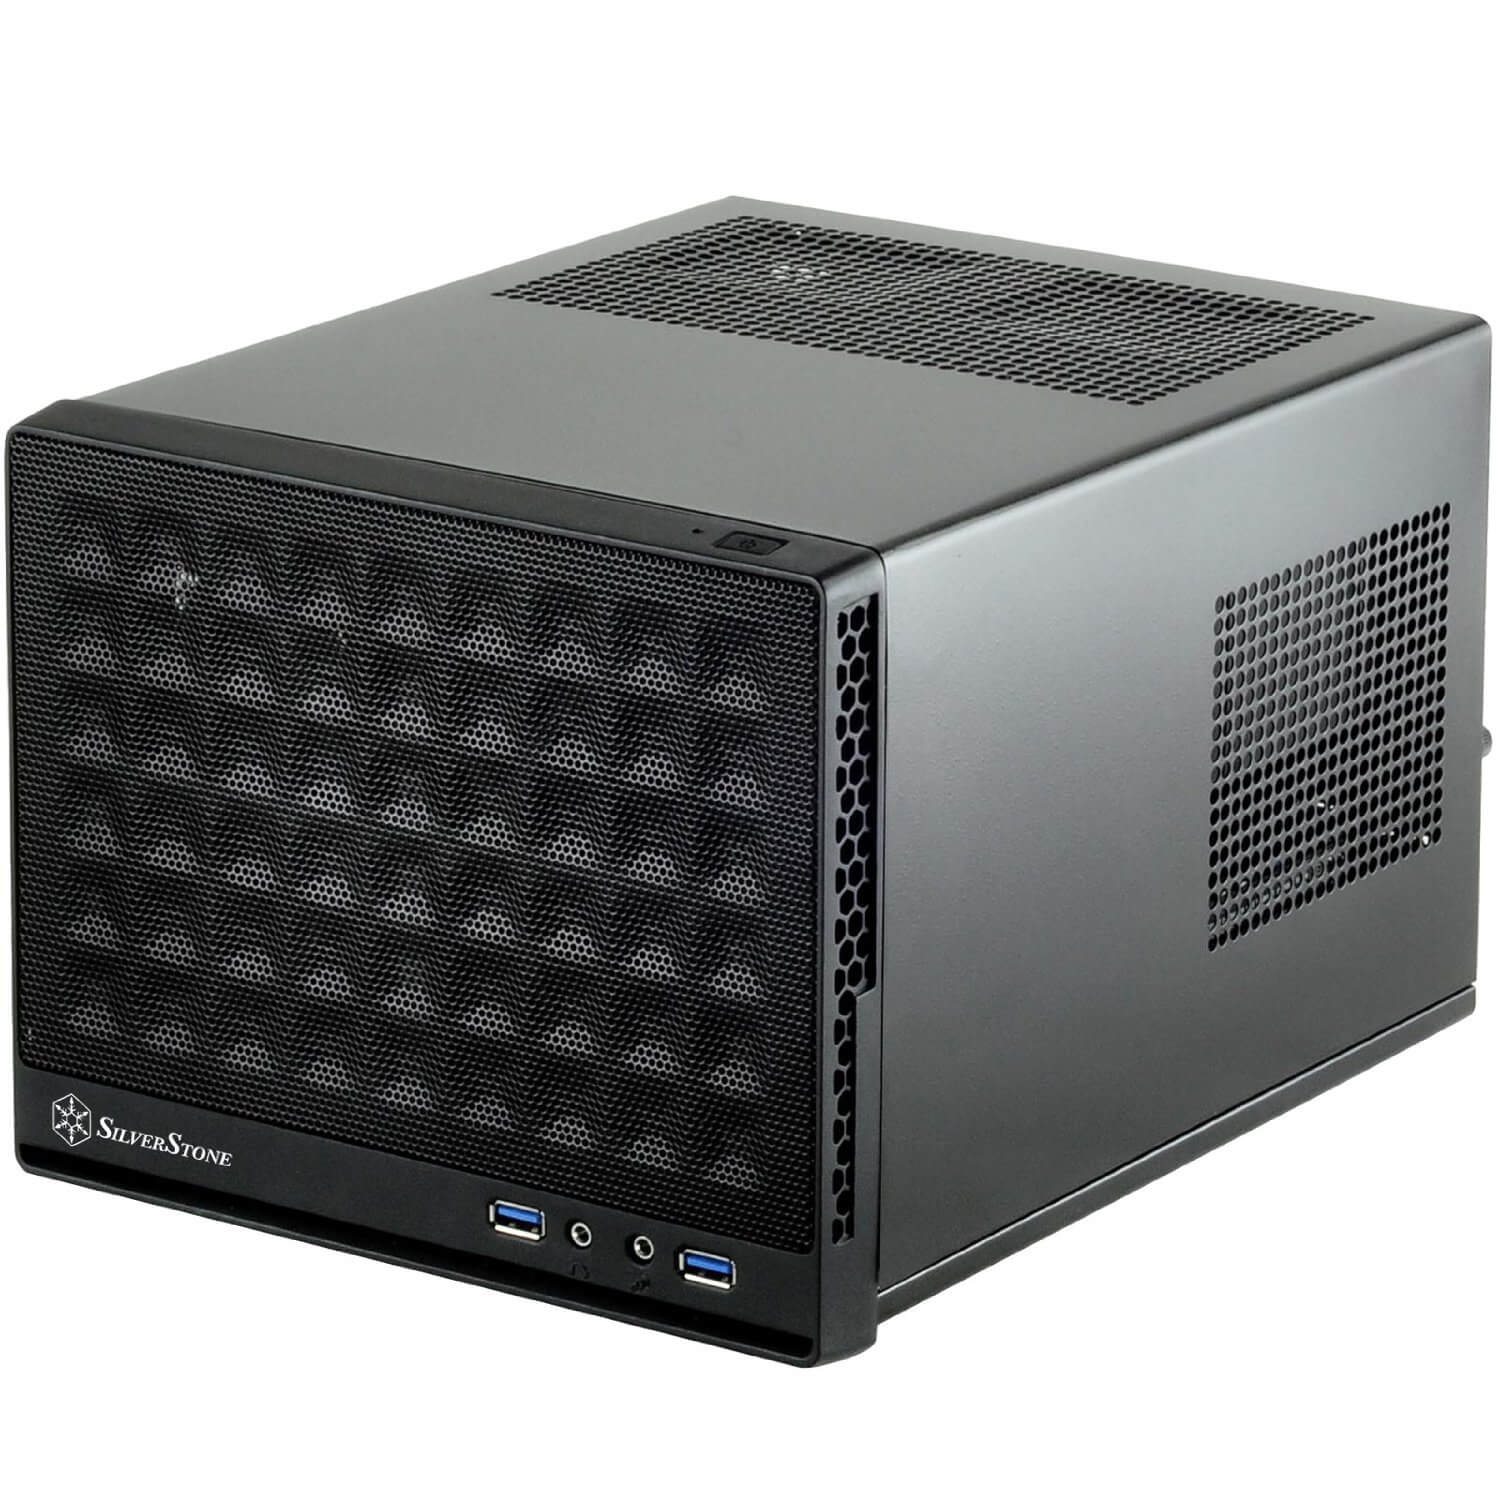 SilverStone SG13 Small Form Factor PC Case